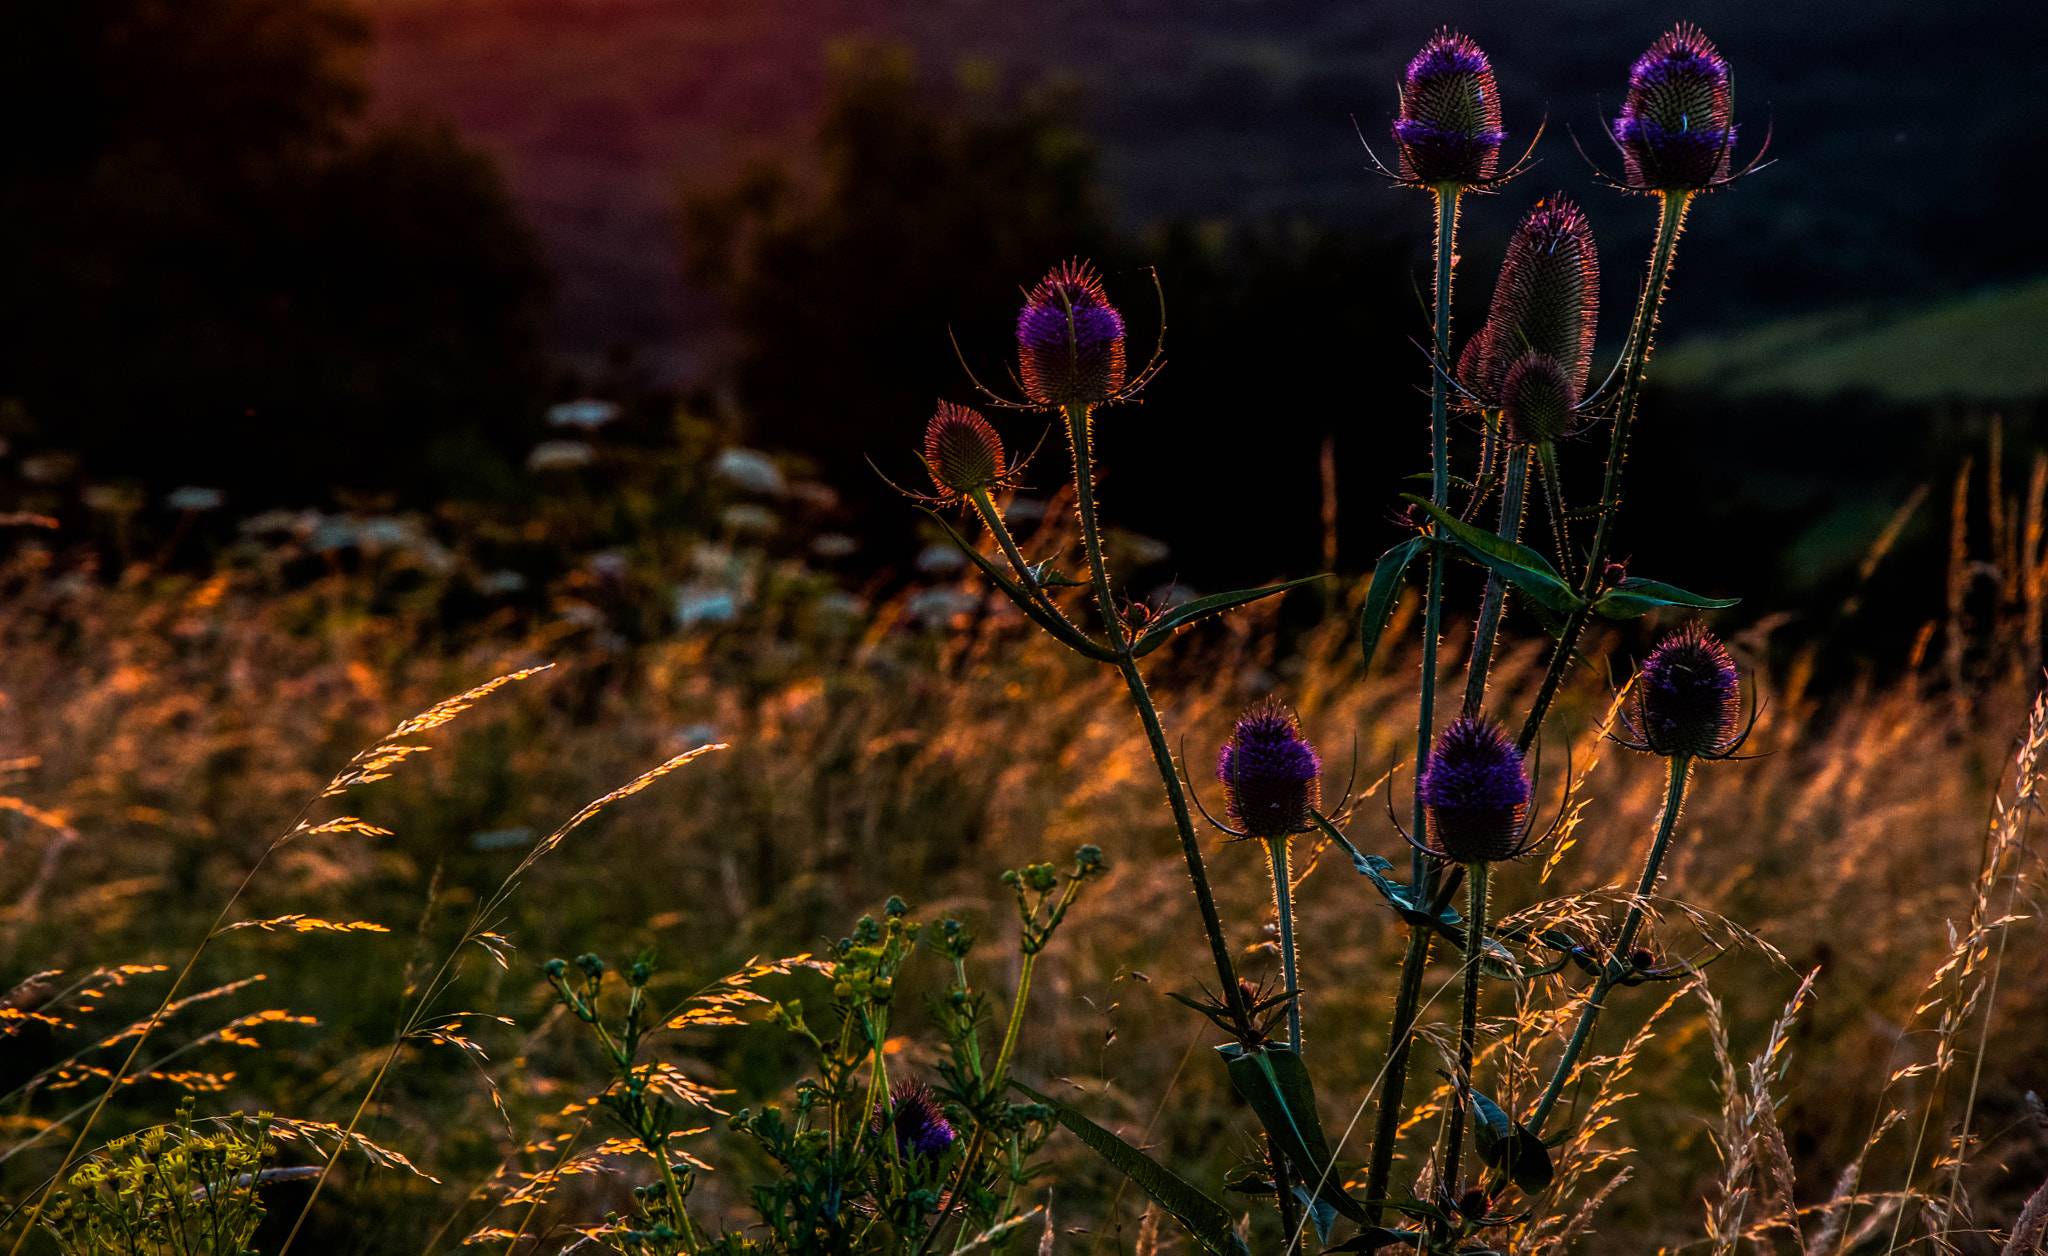 Photograph Teasels at Dusk by julian john on 500px